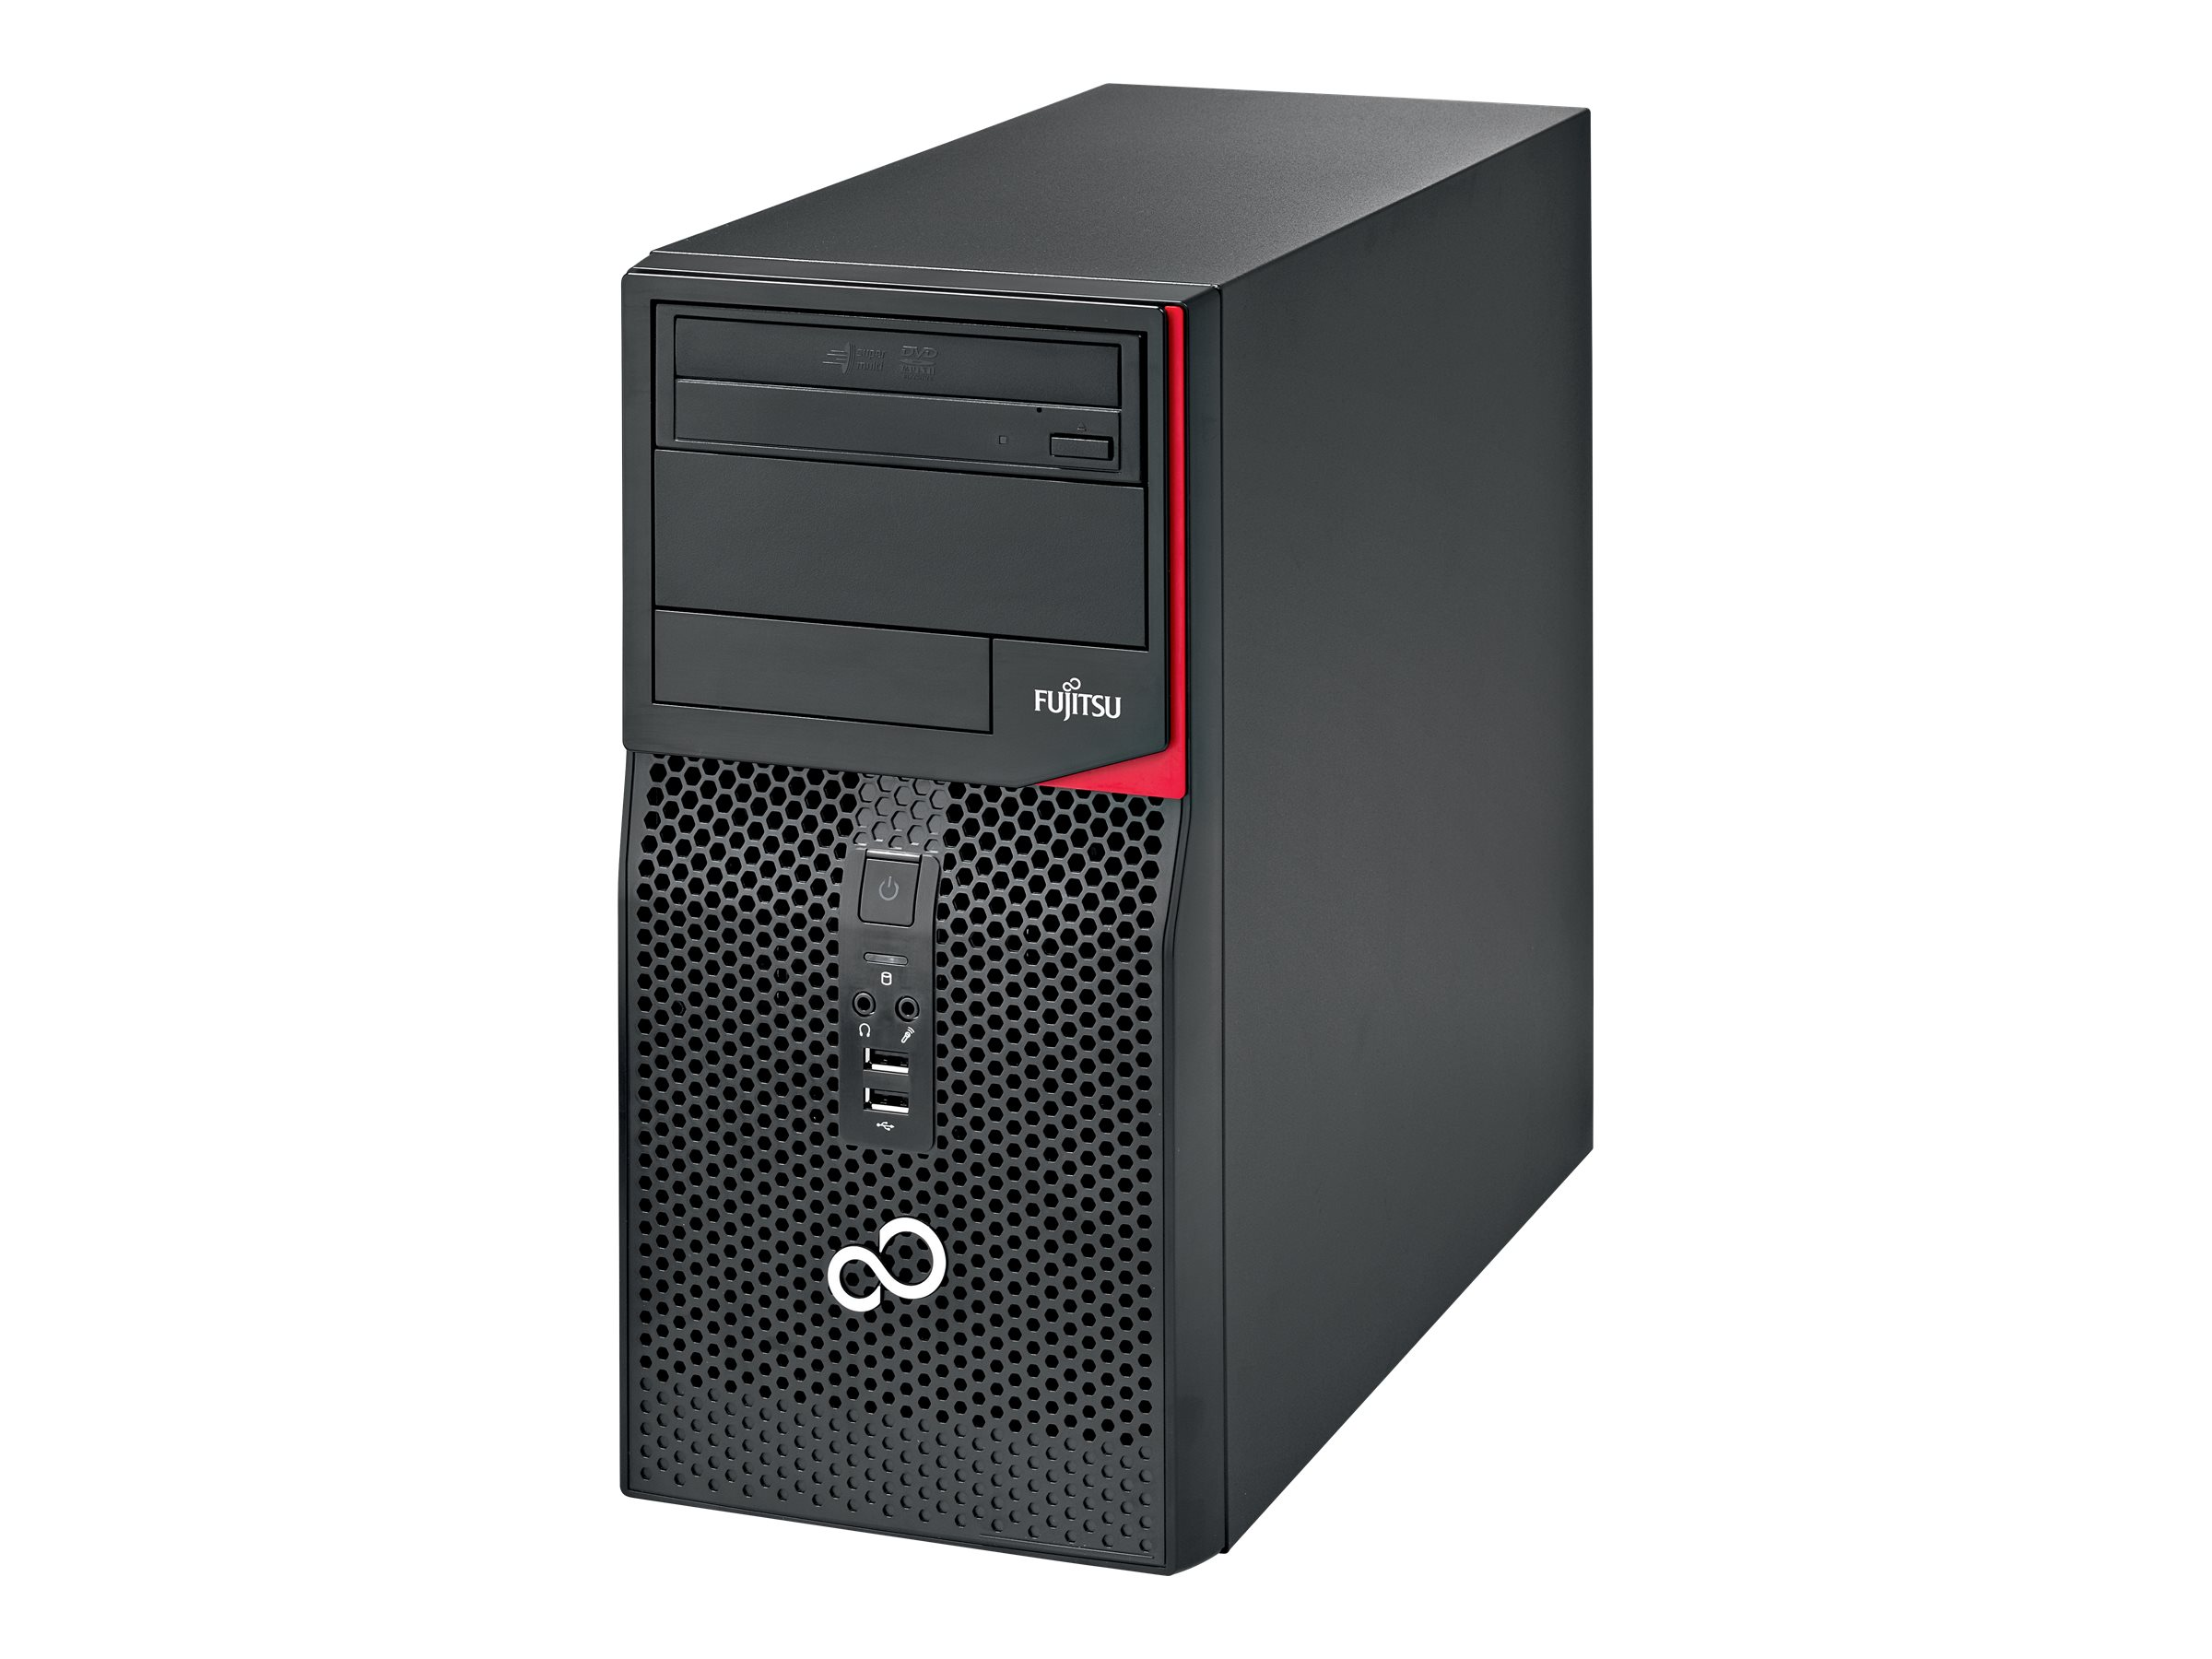 Fujitsu ESPRIMO P556 E85+ - Micro Tower - 1 x Core i3 6100 / 3.7 GHz - RAM 4 GB - HDD 500 GB - DVD SuperMulti